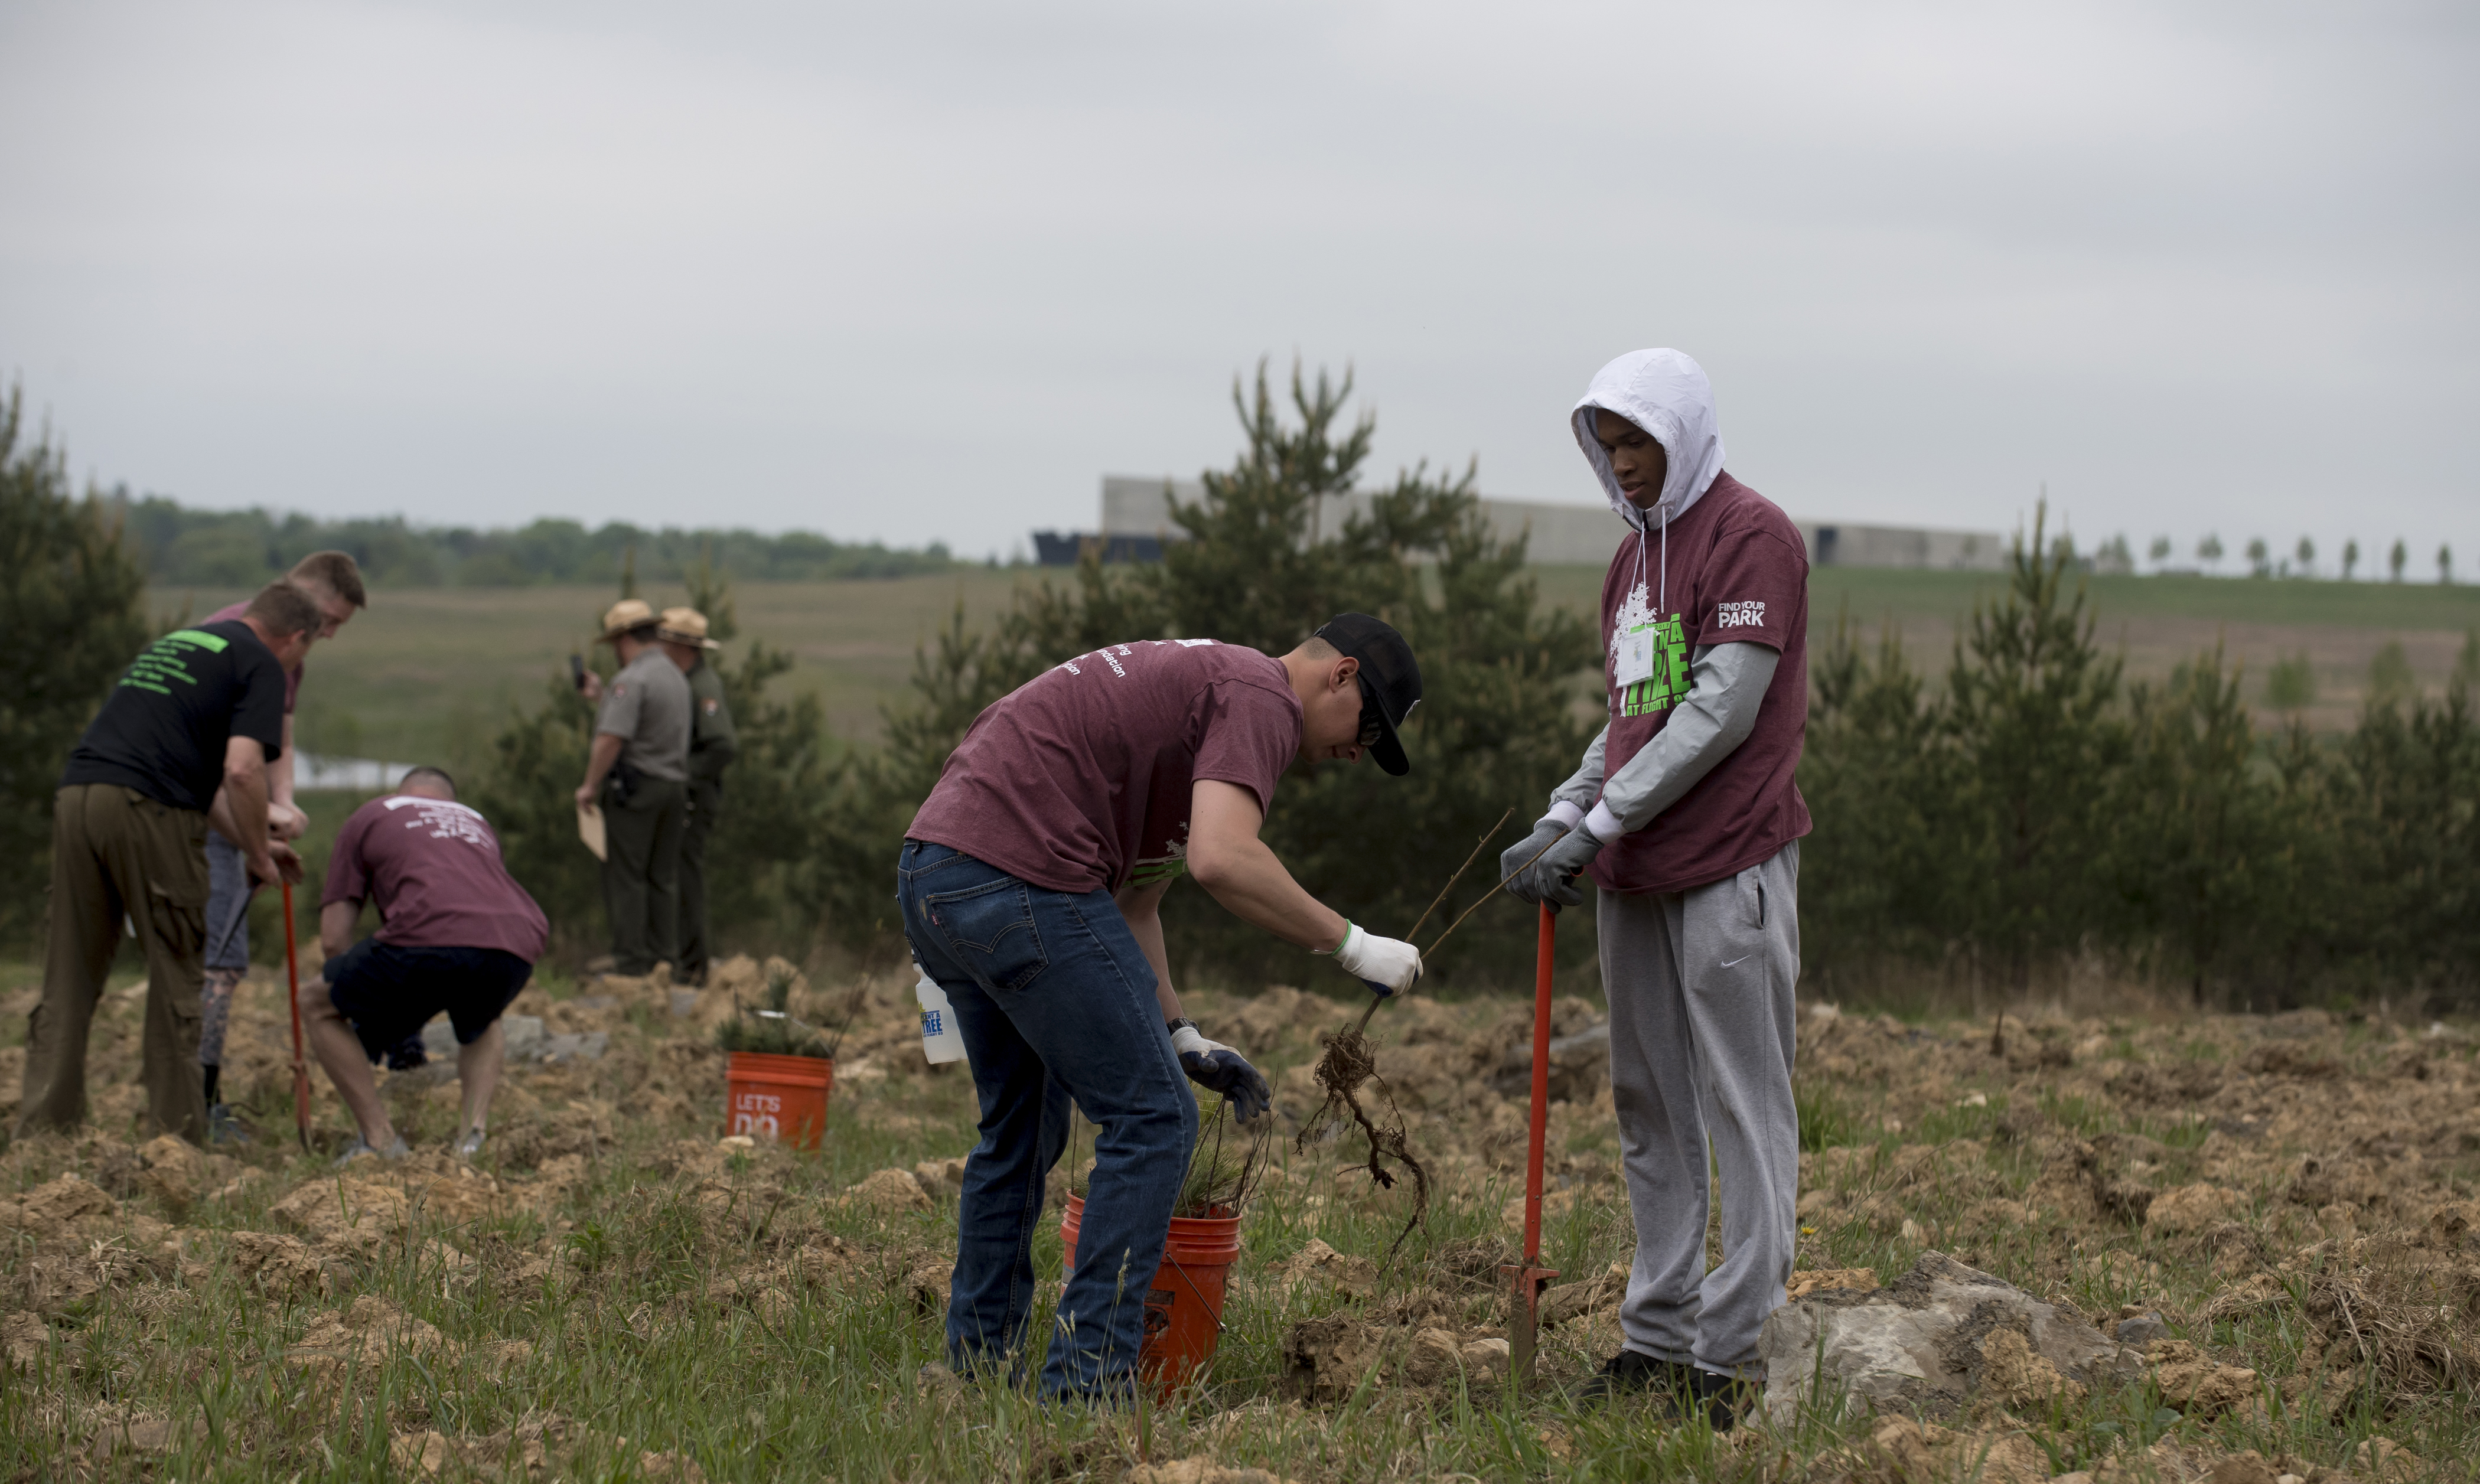 Volunteers plant trees Saturday at the site where Flight 93 crashed in Somerset County, Pennsylvania, during the 9/11 terrorist attacks. The